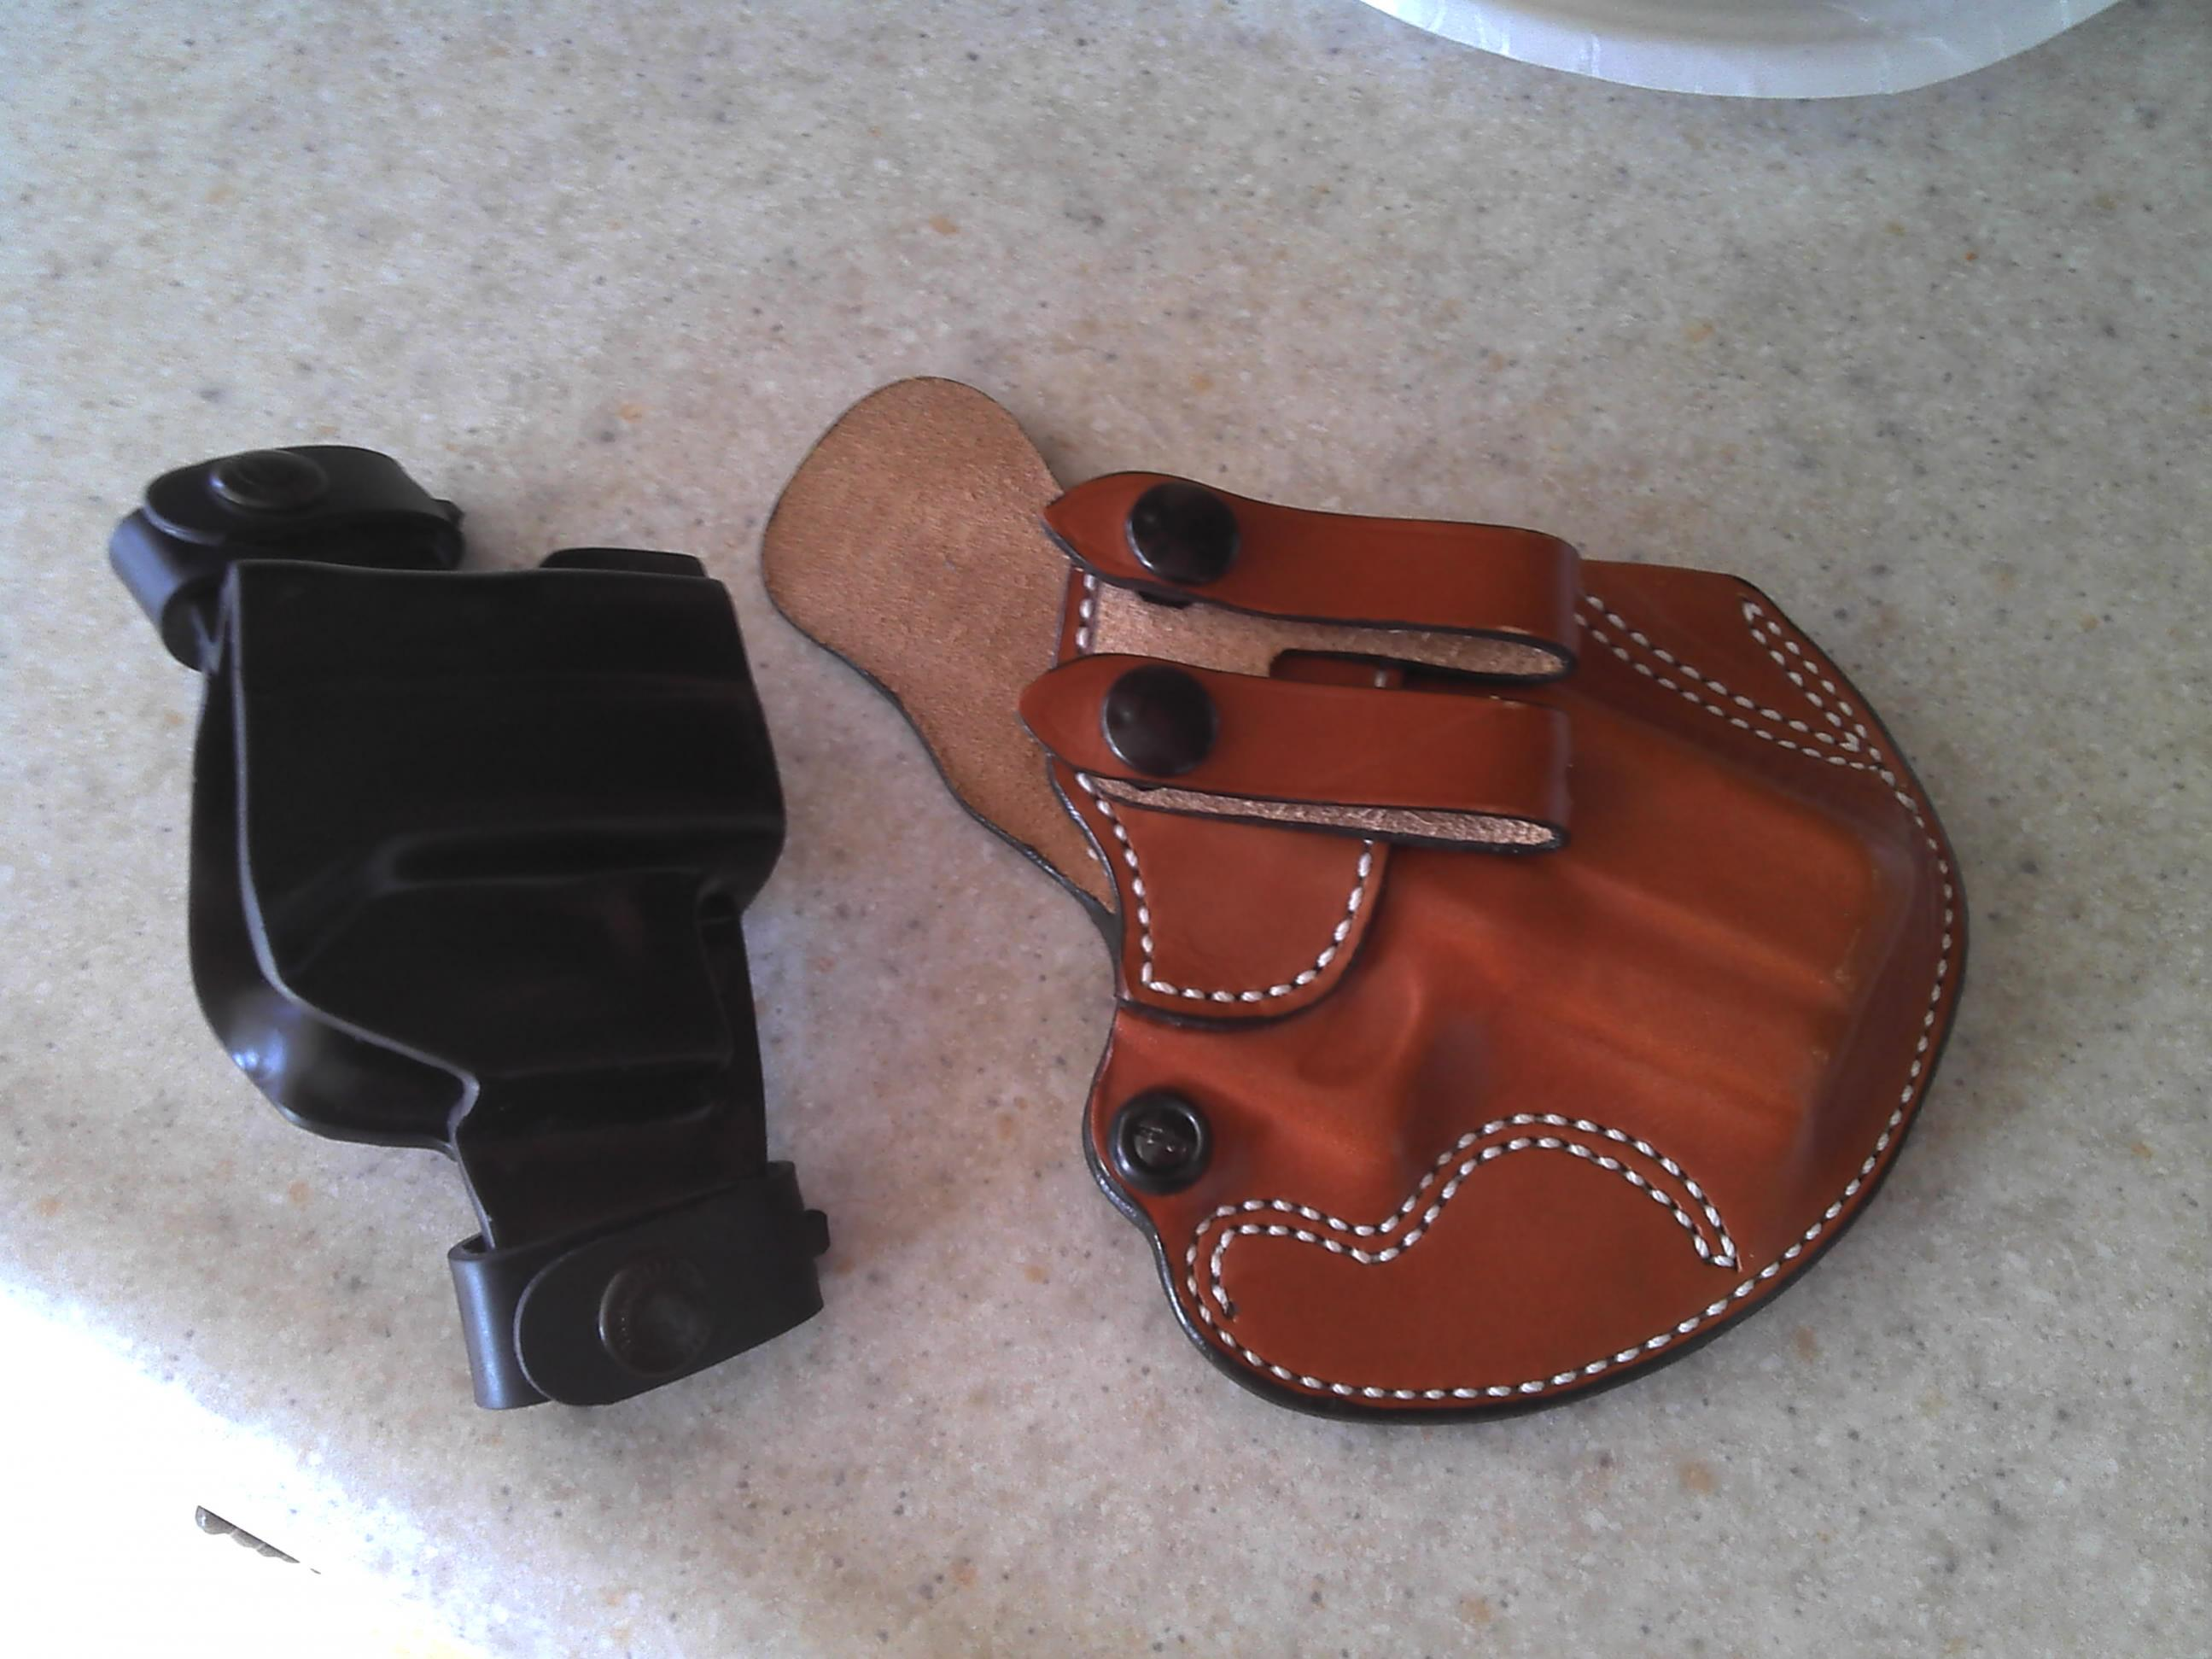 Two Holsters for Glock Pistols - Kentucky-holsters.jpg